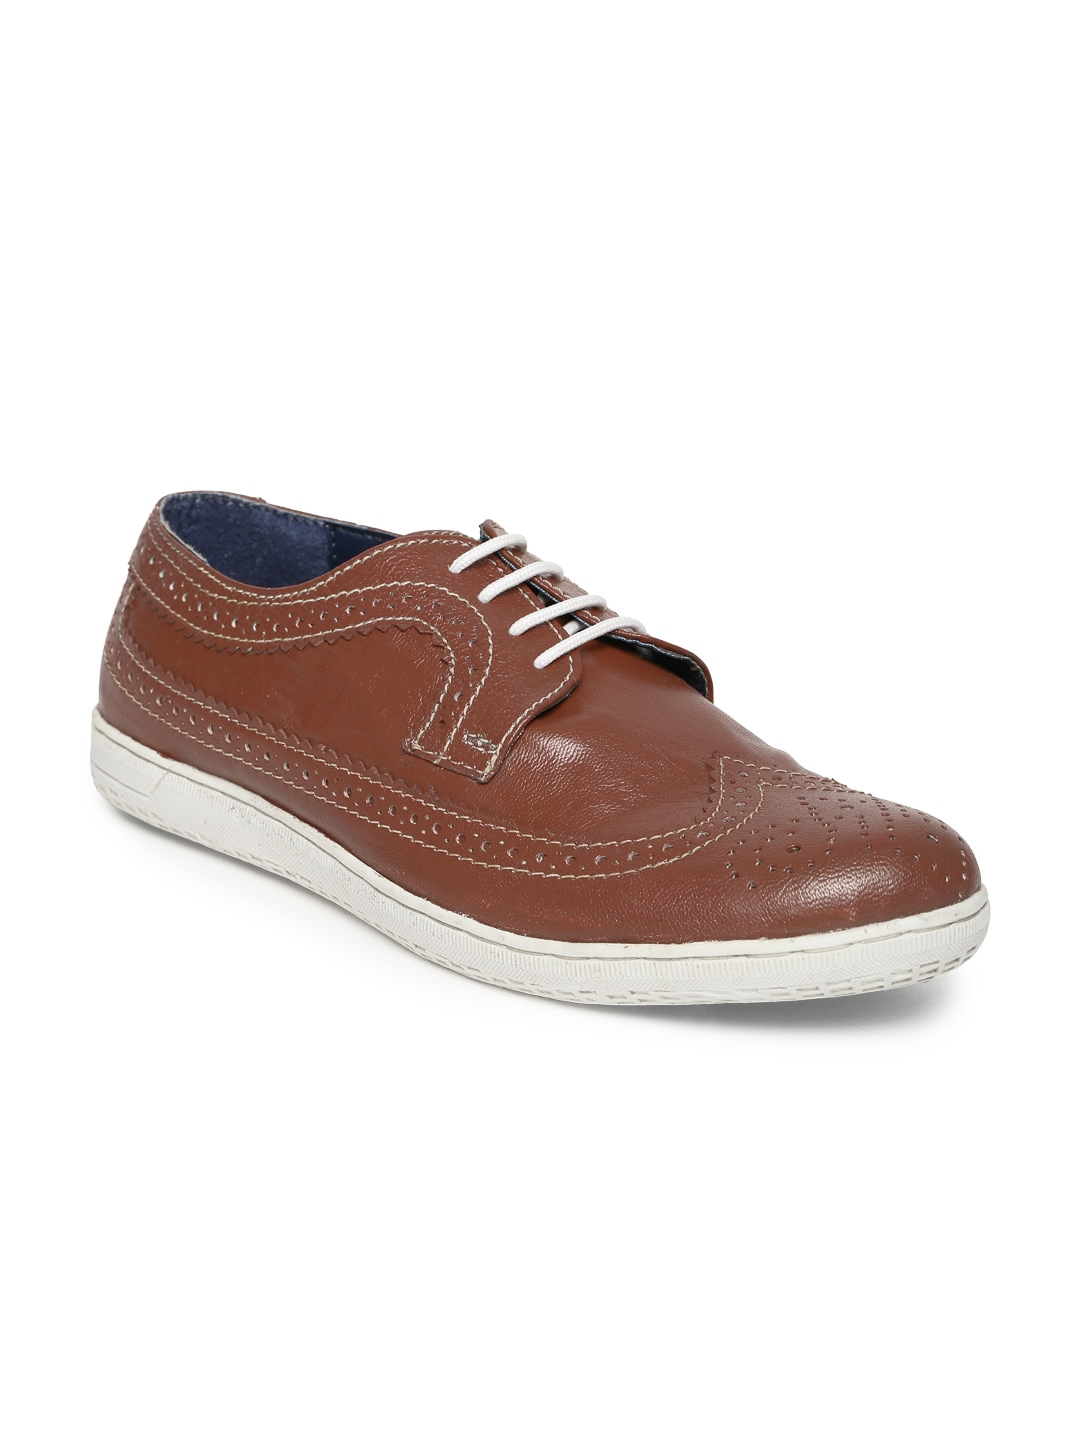 freecultr brown casual shoes at myntra